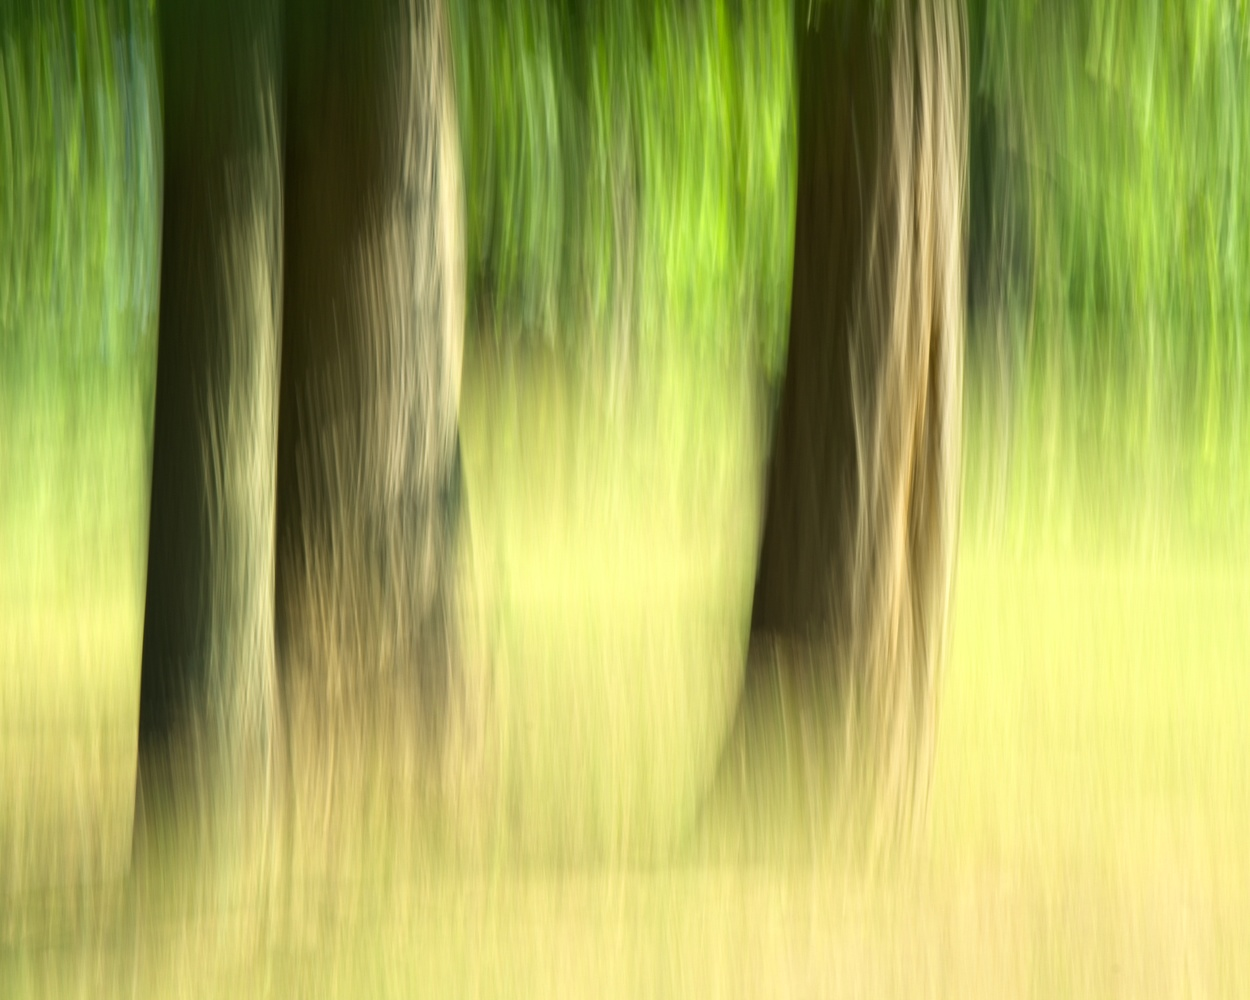 Woods ICM by Matthew Lacy